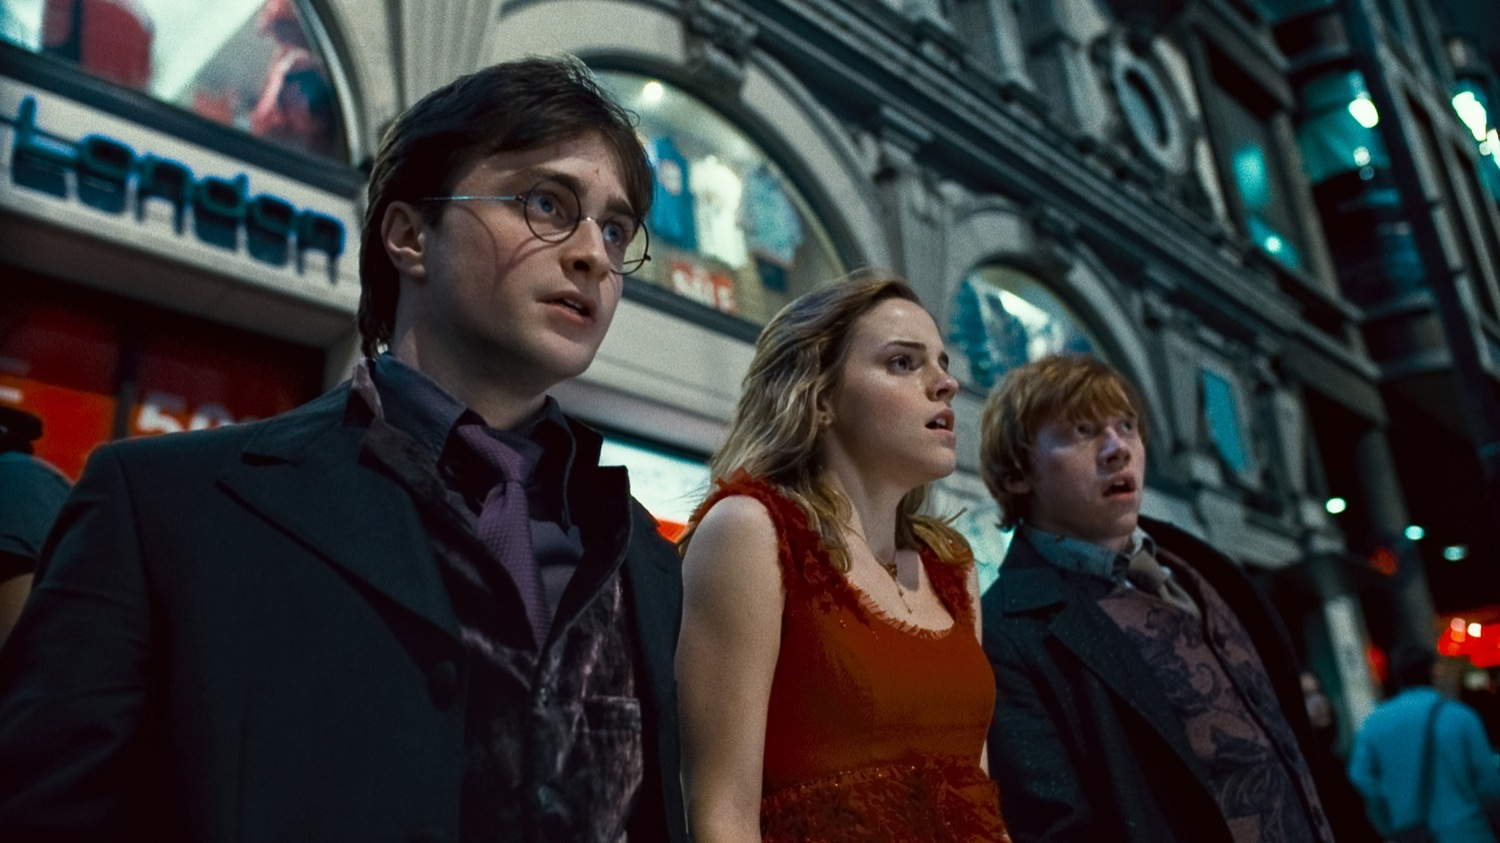 Harry Potter (Daniel Radcliffe), Hermione Granger (Emma Watson) and Ron Weasley (Rupert Grint) in Harry Potter and the Deathly Hallows Part 1 (2010)